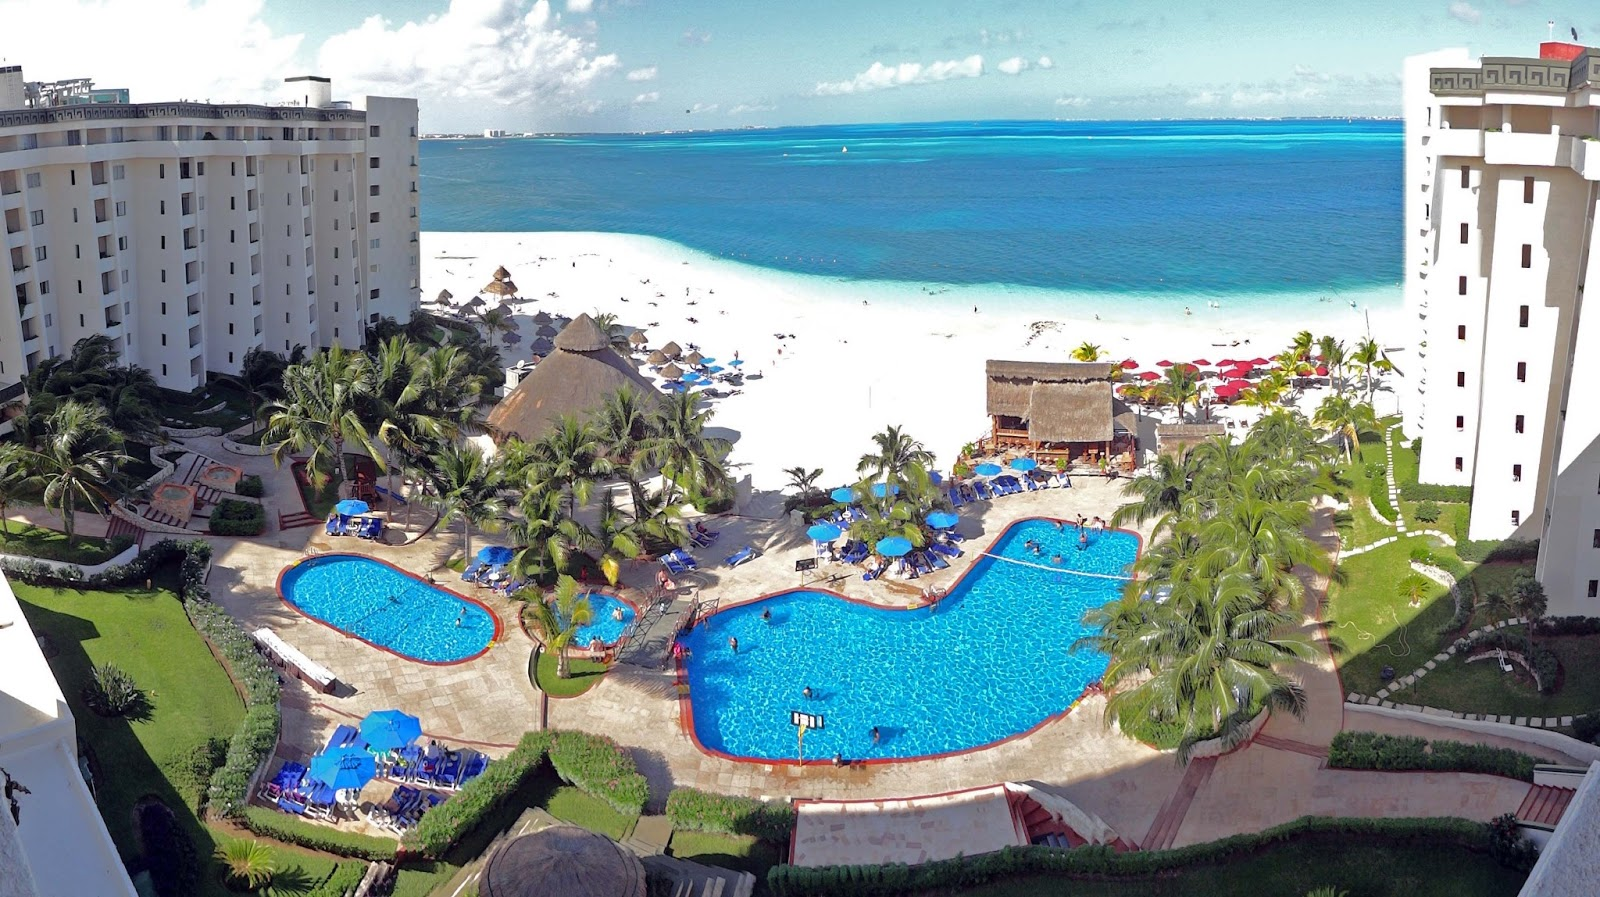 Mayan Hotel Cancun 2018 Worlds Best Hotels